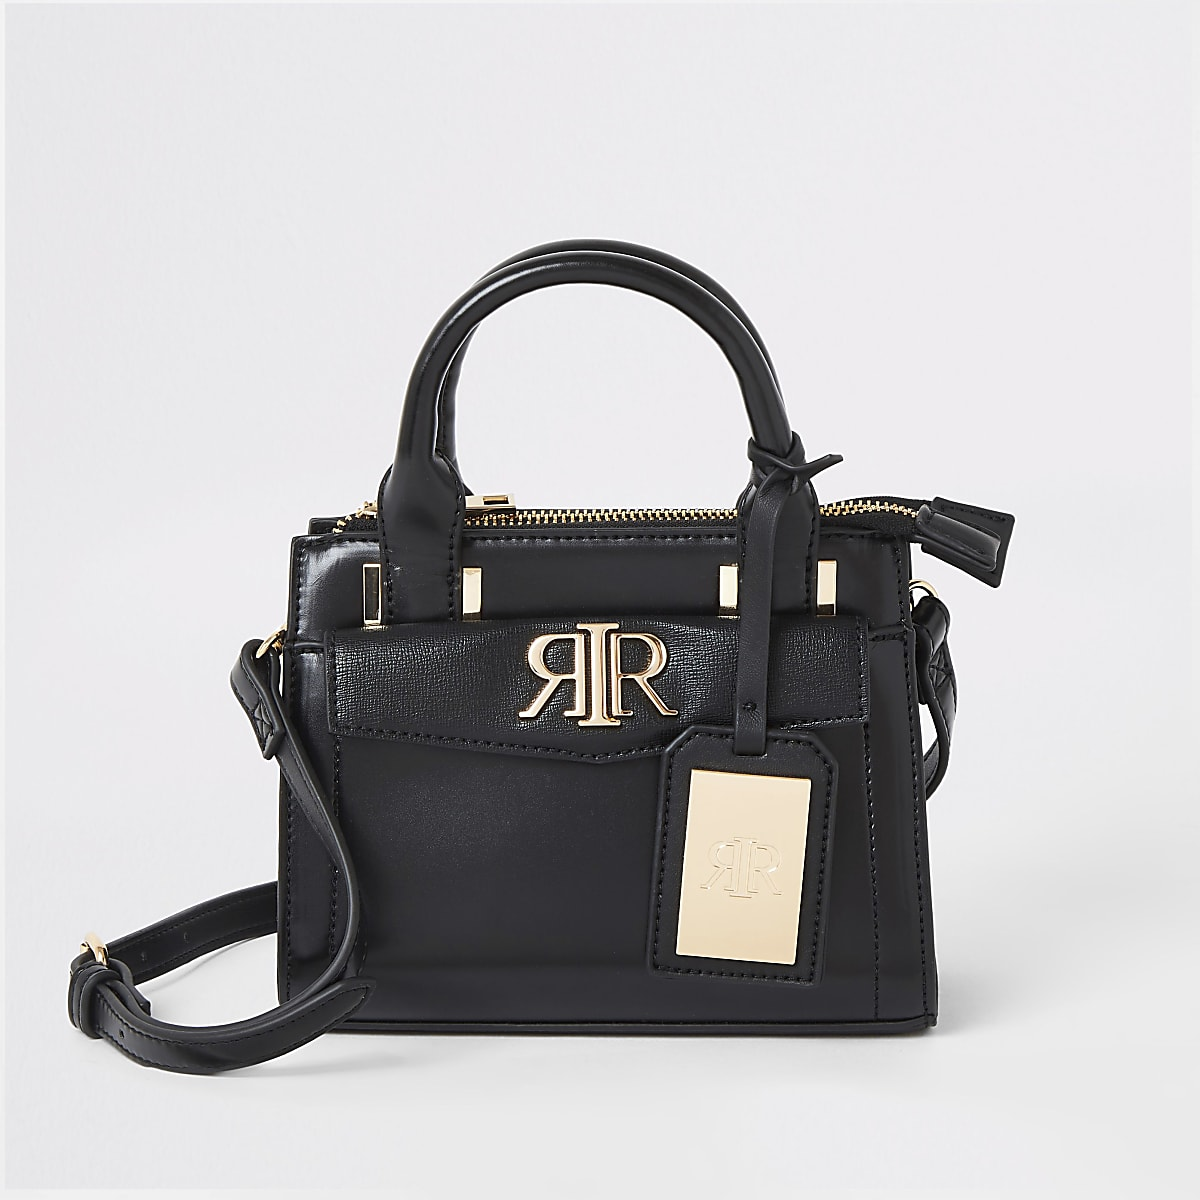 Black RI mini cross body tote bag